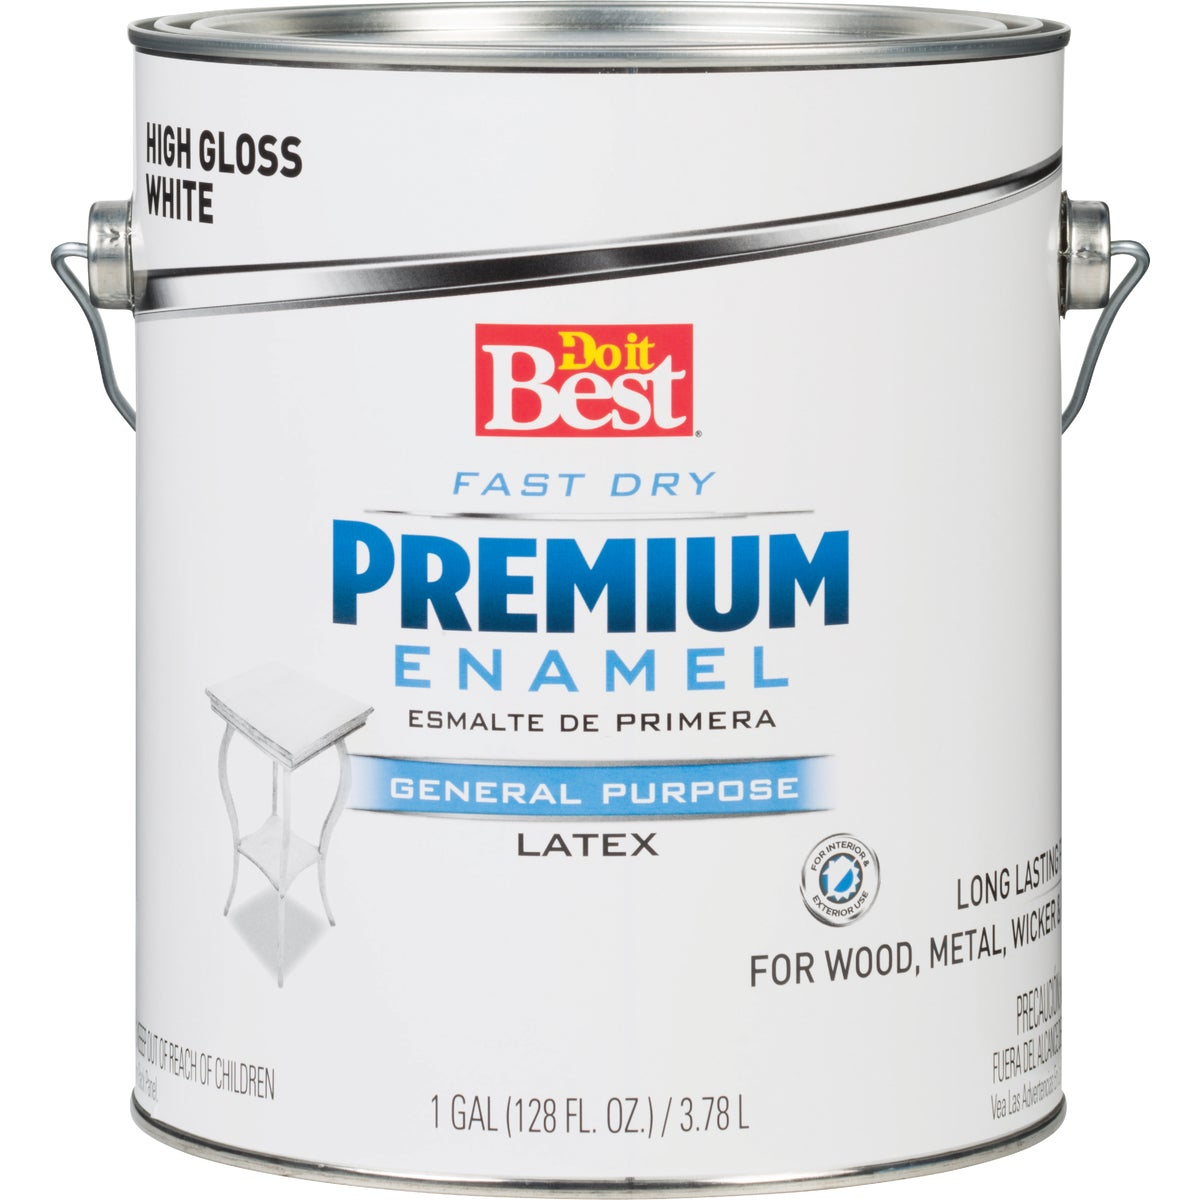 WHITE LATEX ENAMEL - 2301 by Rustoleum